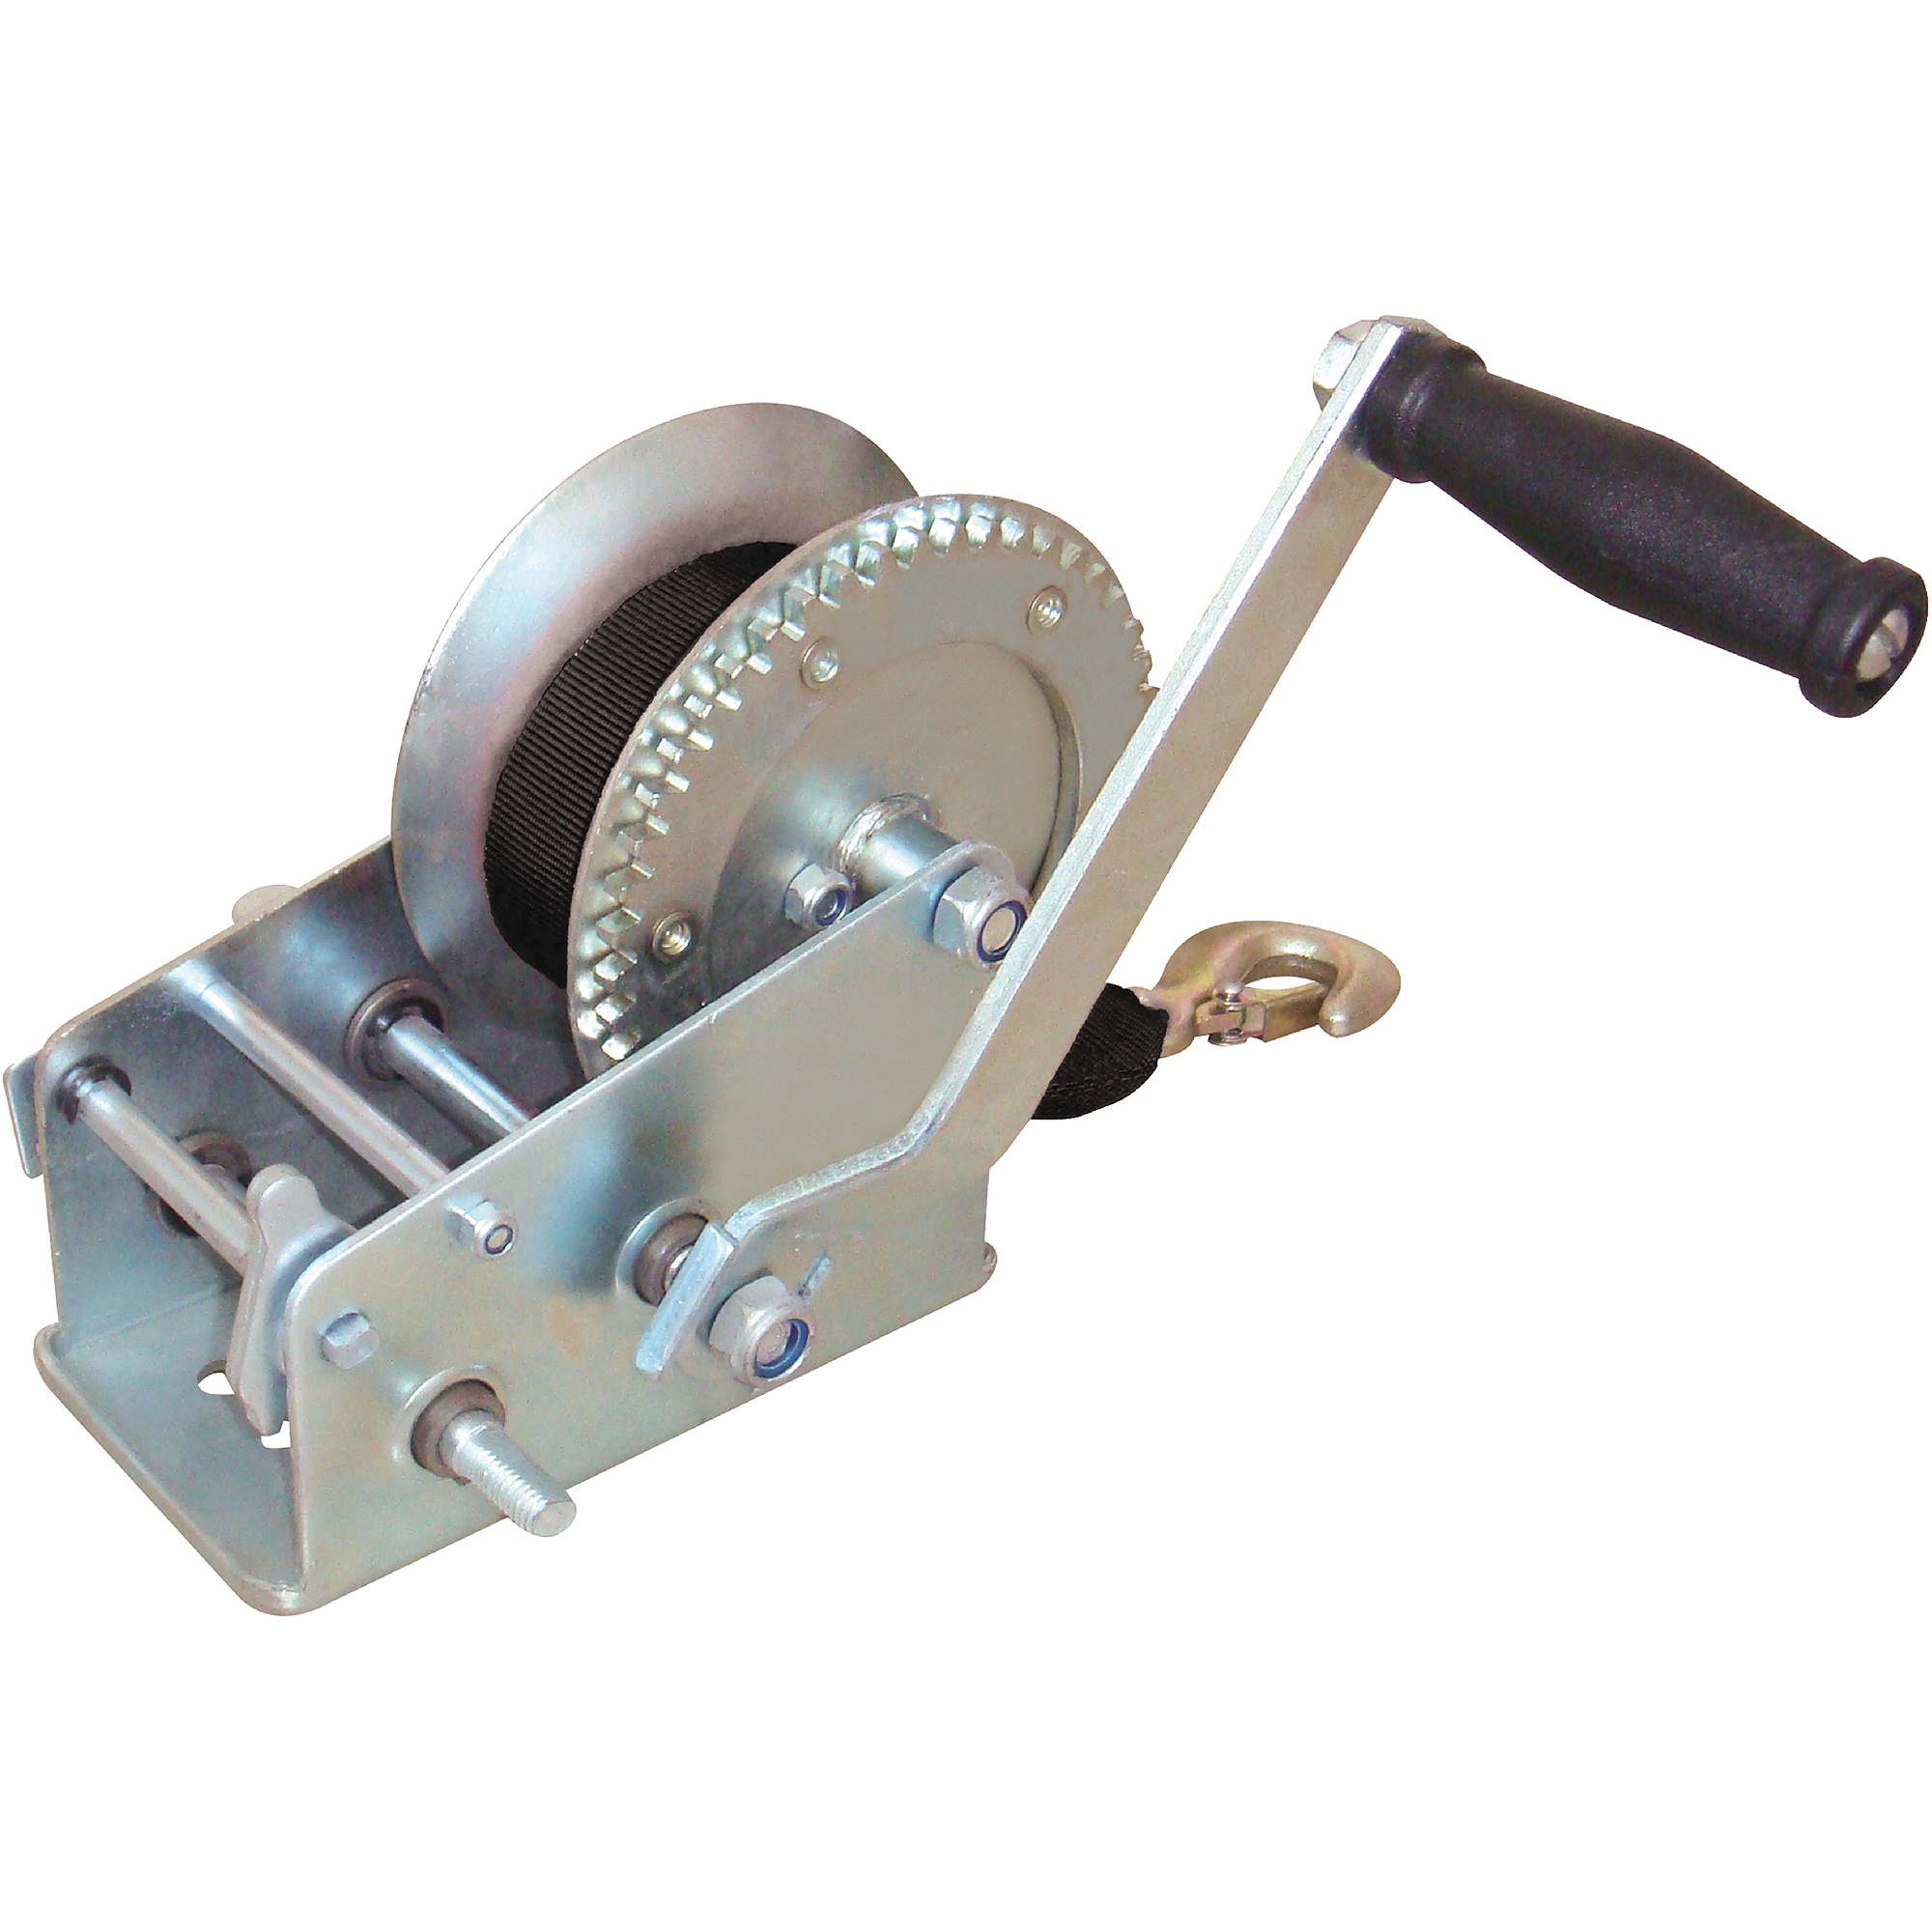 Seachoice Manual Trailer Winch, 3,000 lbs by Seachoice Products